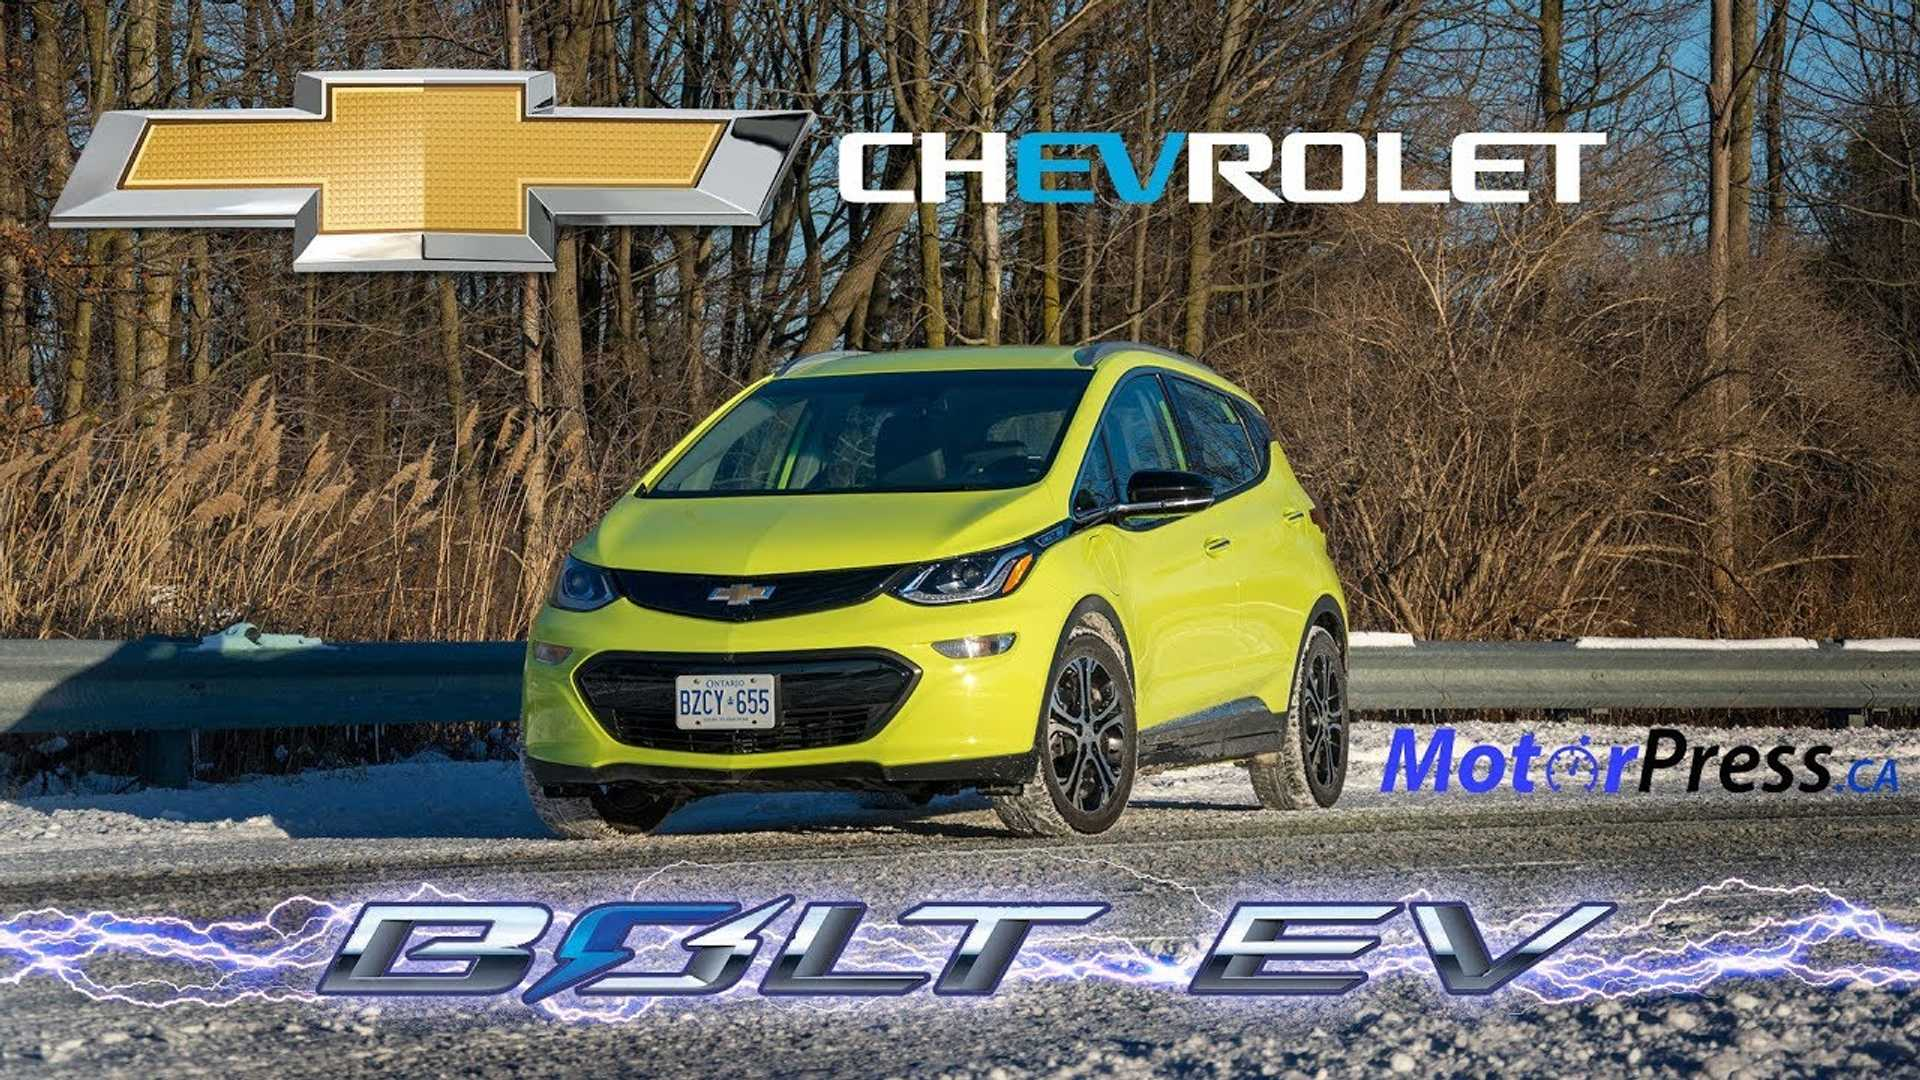 16 All New Chevrolet Volt 2019 Canada First Drive Release by Chevrolet Volt 2019 Canada First Drive